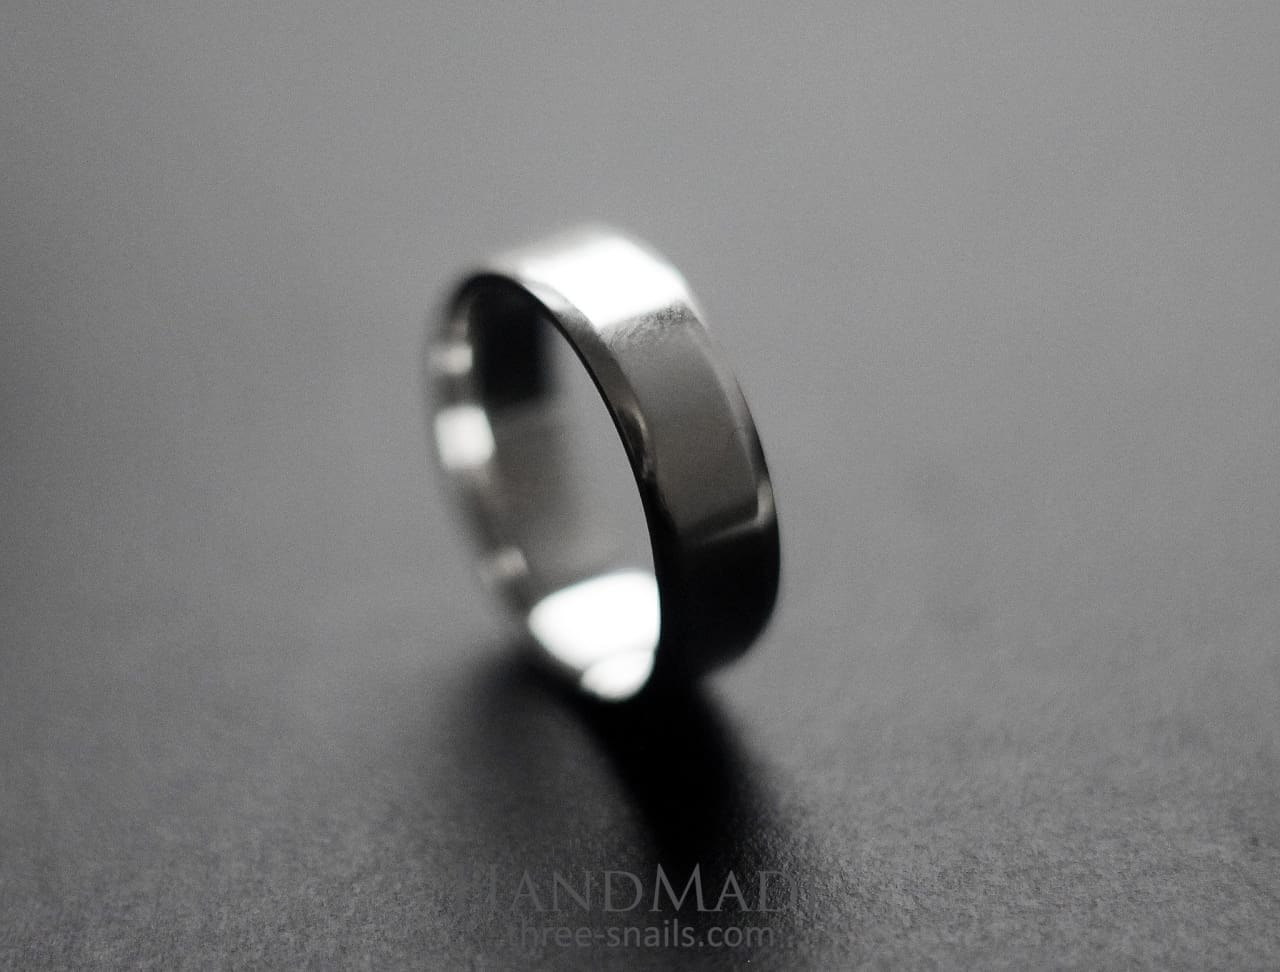 Wedding Ring With Beveled Edges - Melnichenko1